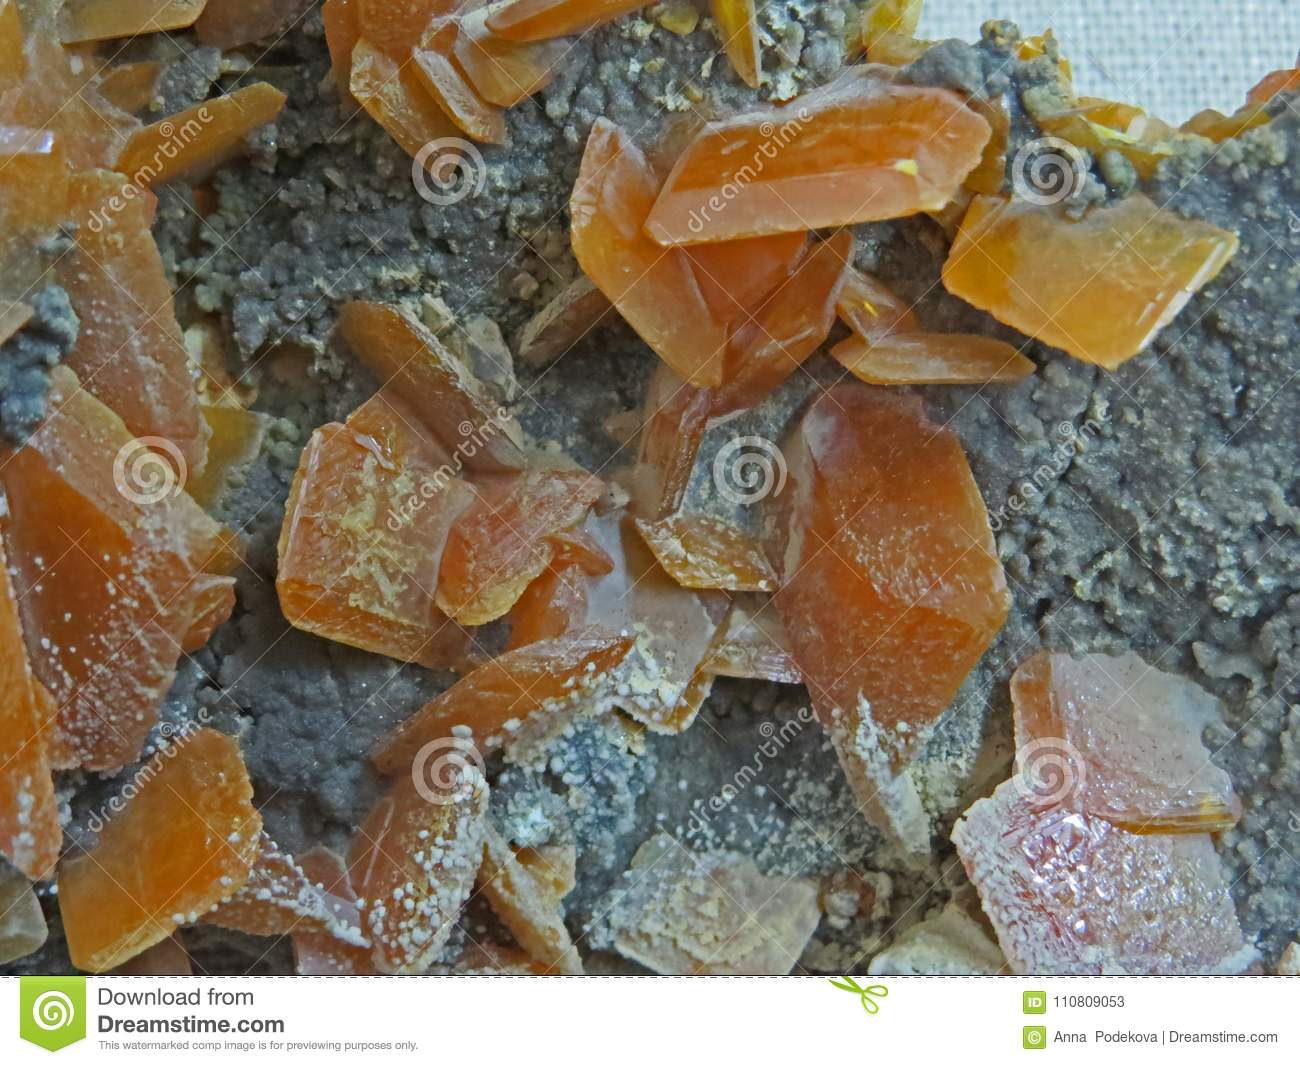 Natural shapes. Minerals and semi-precious stones textures and backgrounds